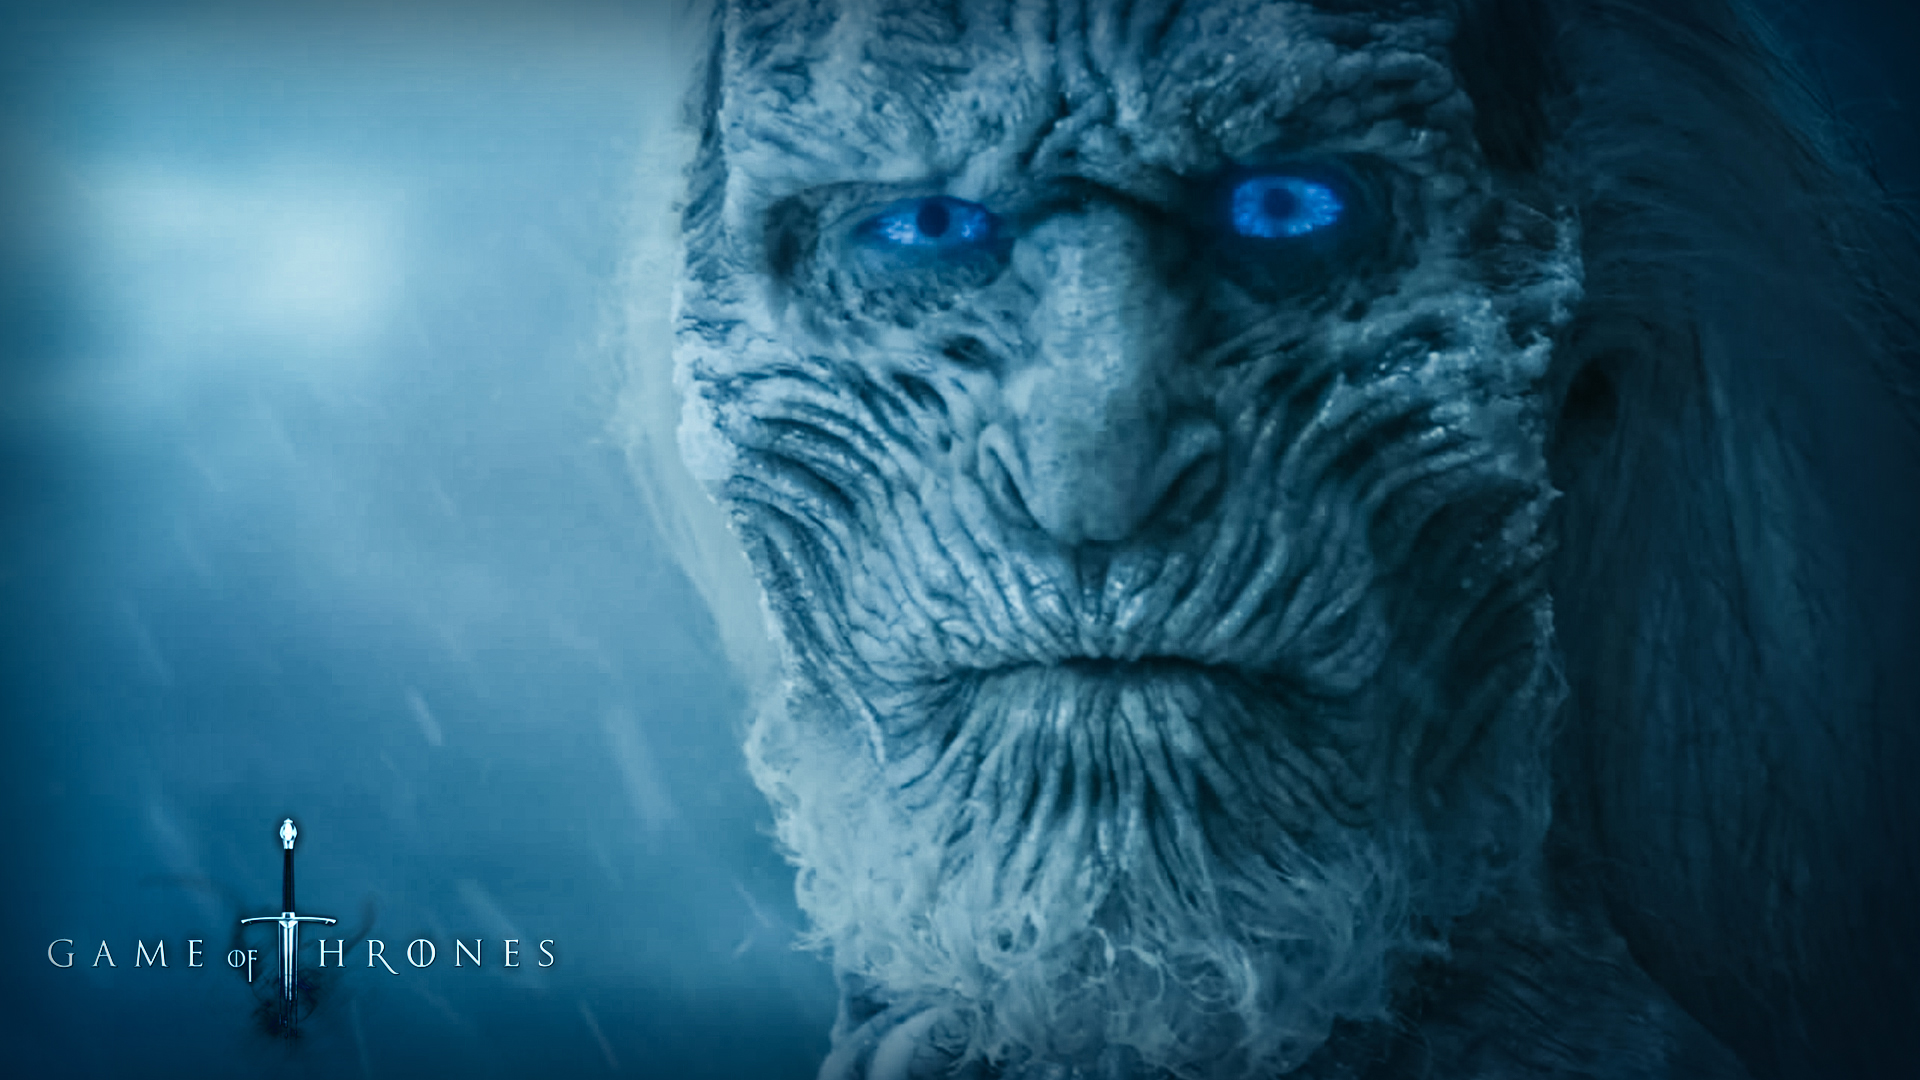 Game of Thrones Season 4   Wallpaper High Definition High Quality 1920x1080